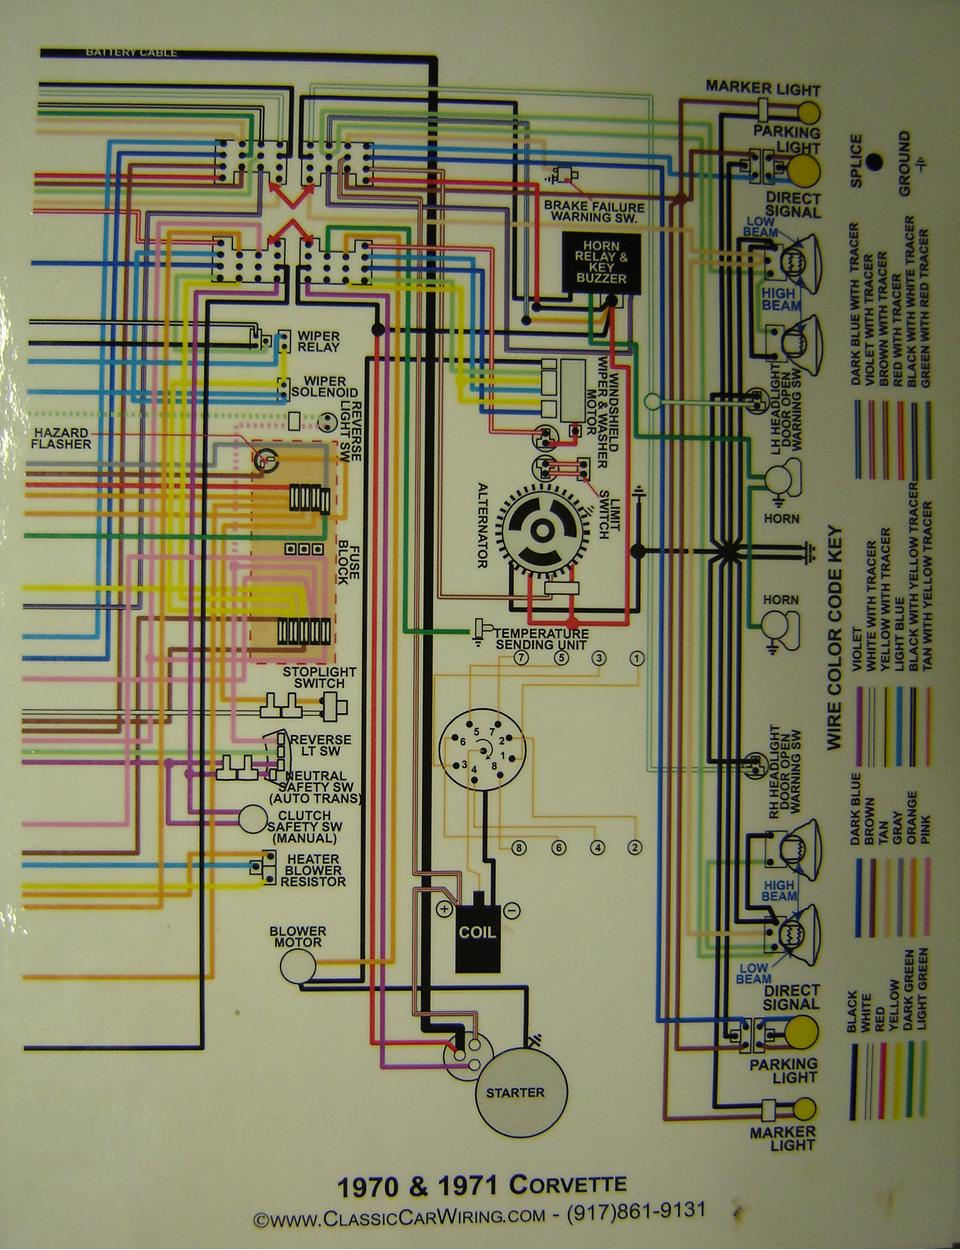 1970 71 corvette color wiring diagram B chevy diagrams 1971 corvette wiring diagram at honlapkeszites.co